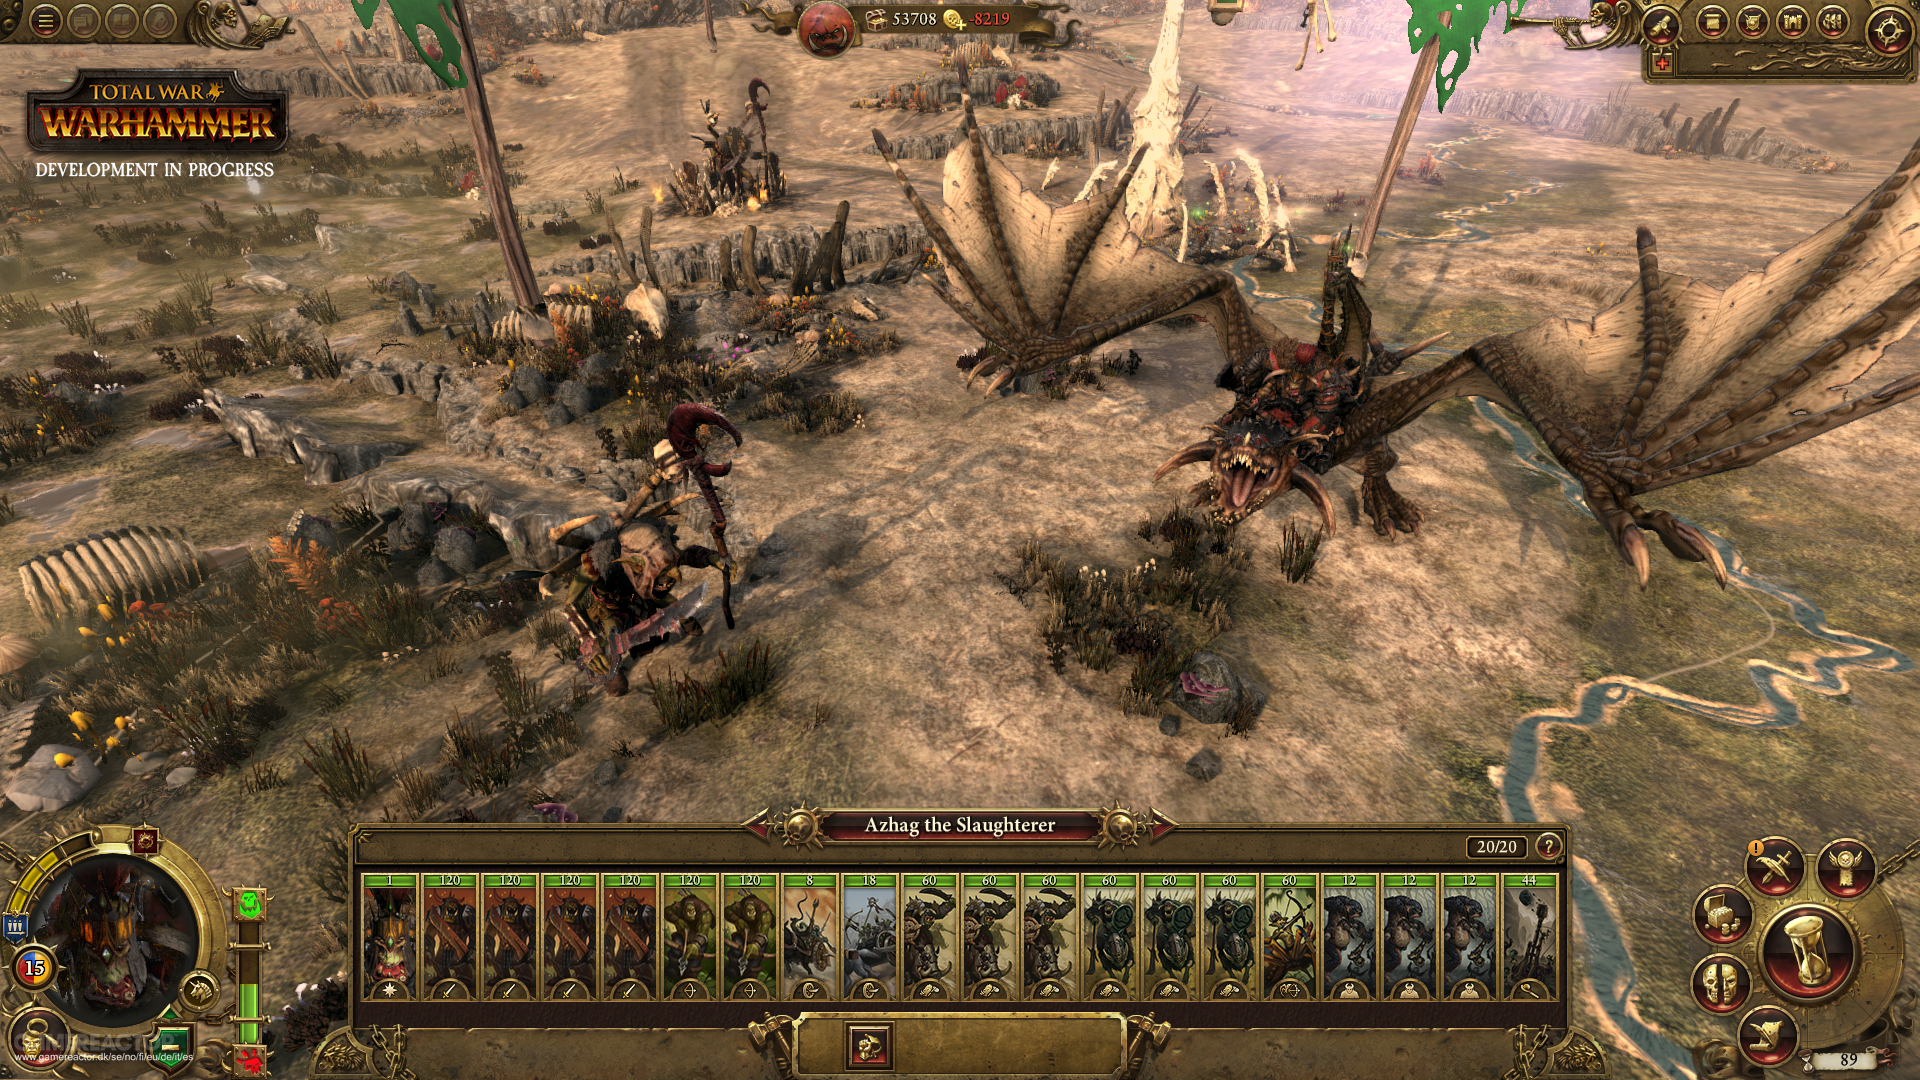 Pictures of First look at Total War: Warhammer's Campaign